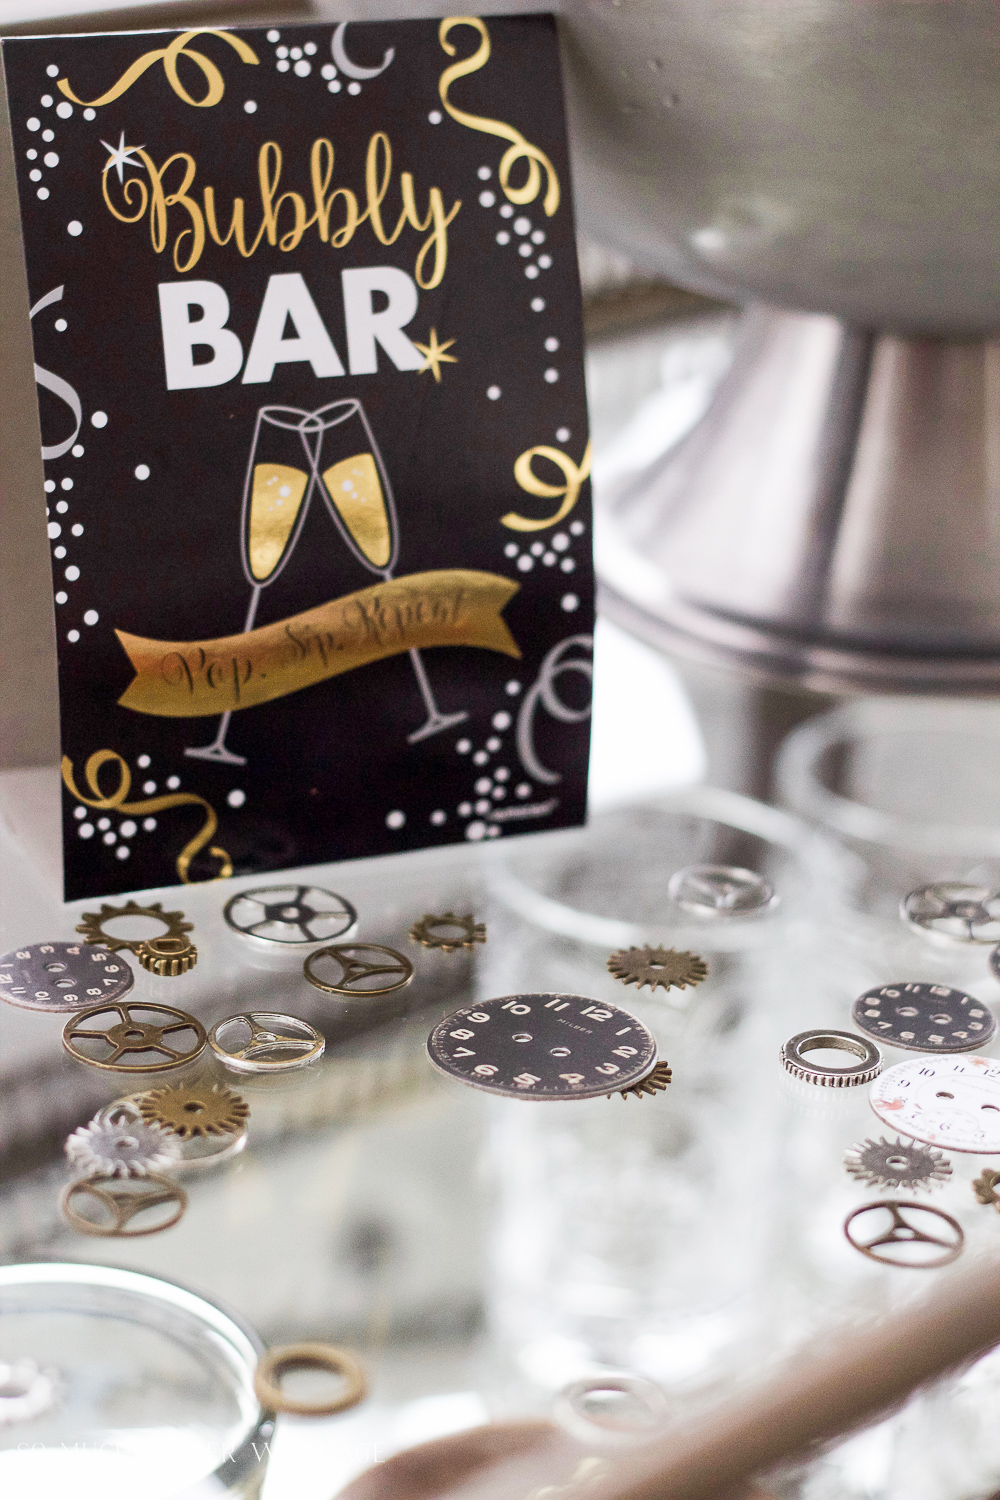 Clock gears for party decor / A New Year's Eve Party Bubbly Bar with Party Tips